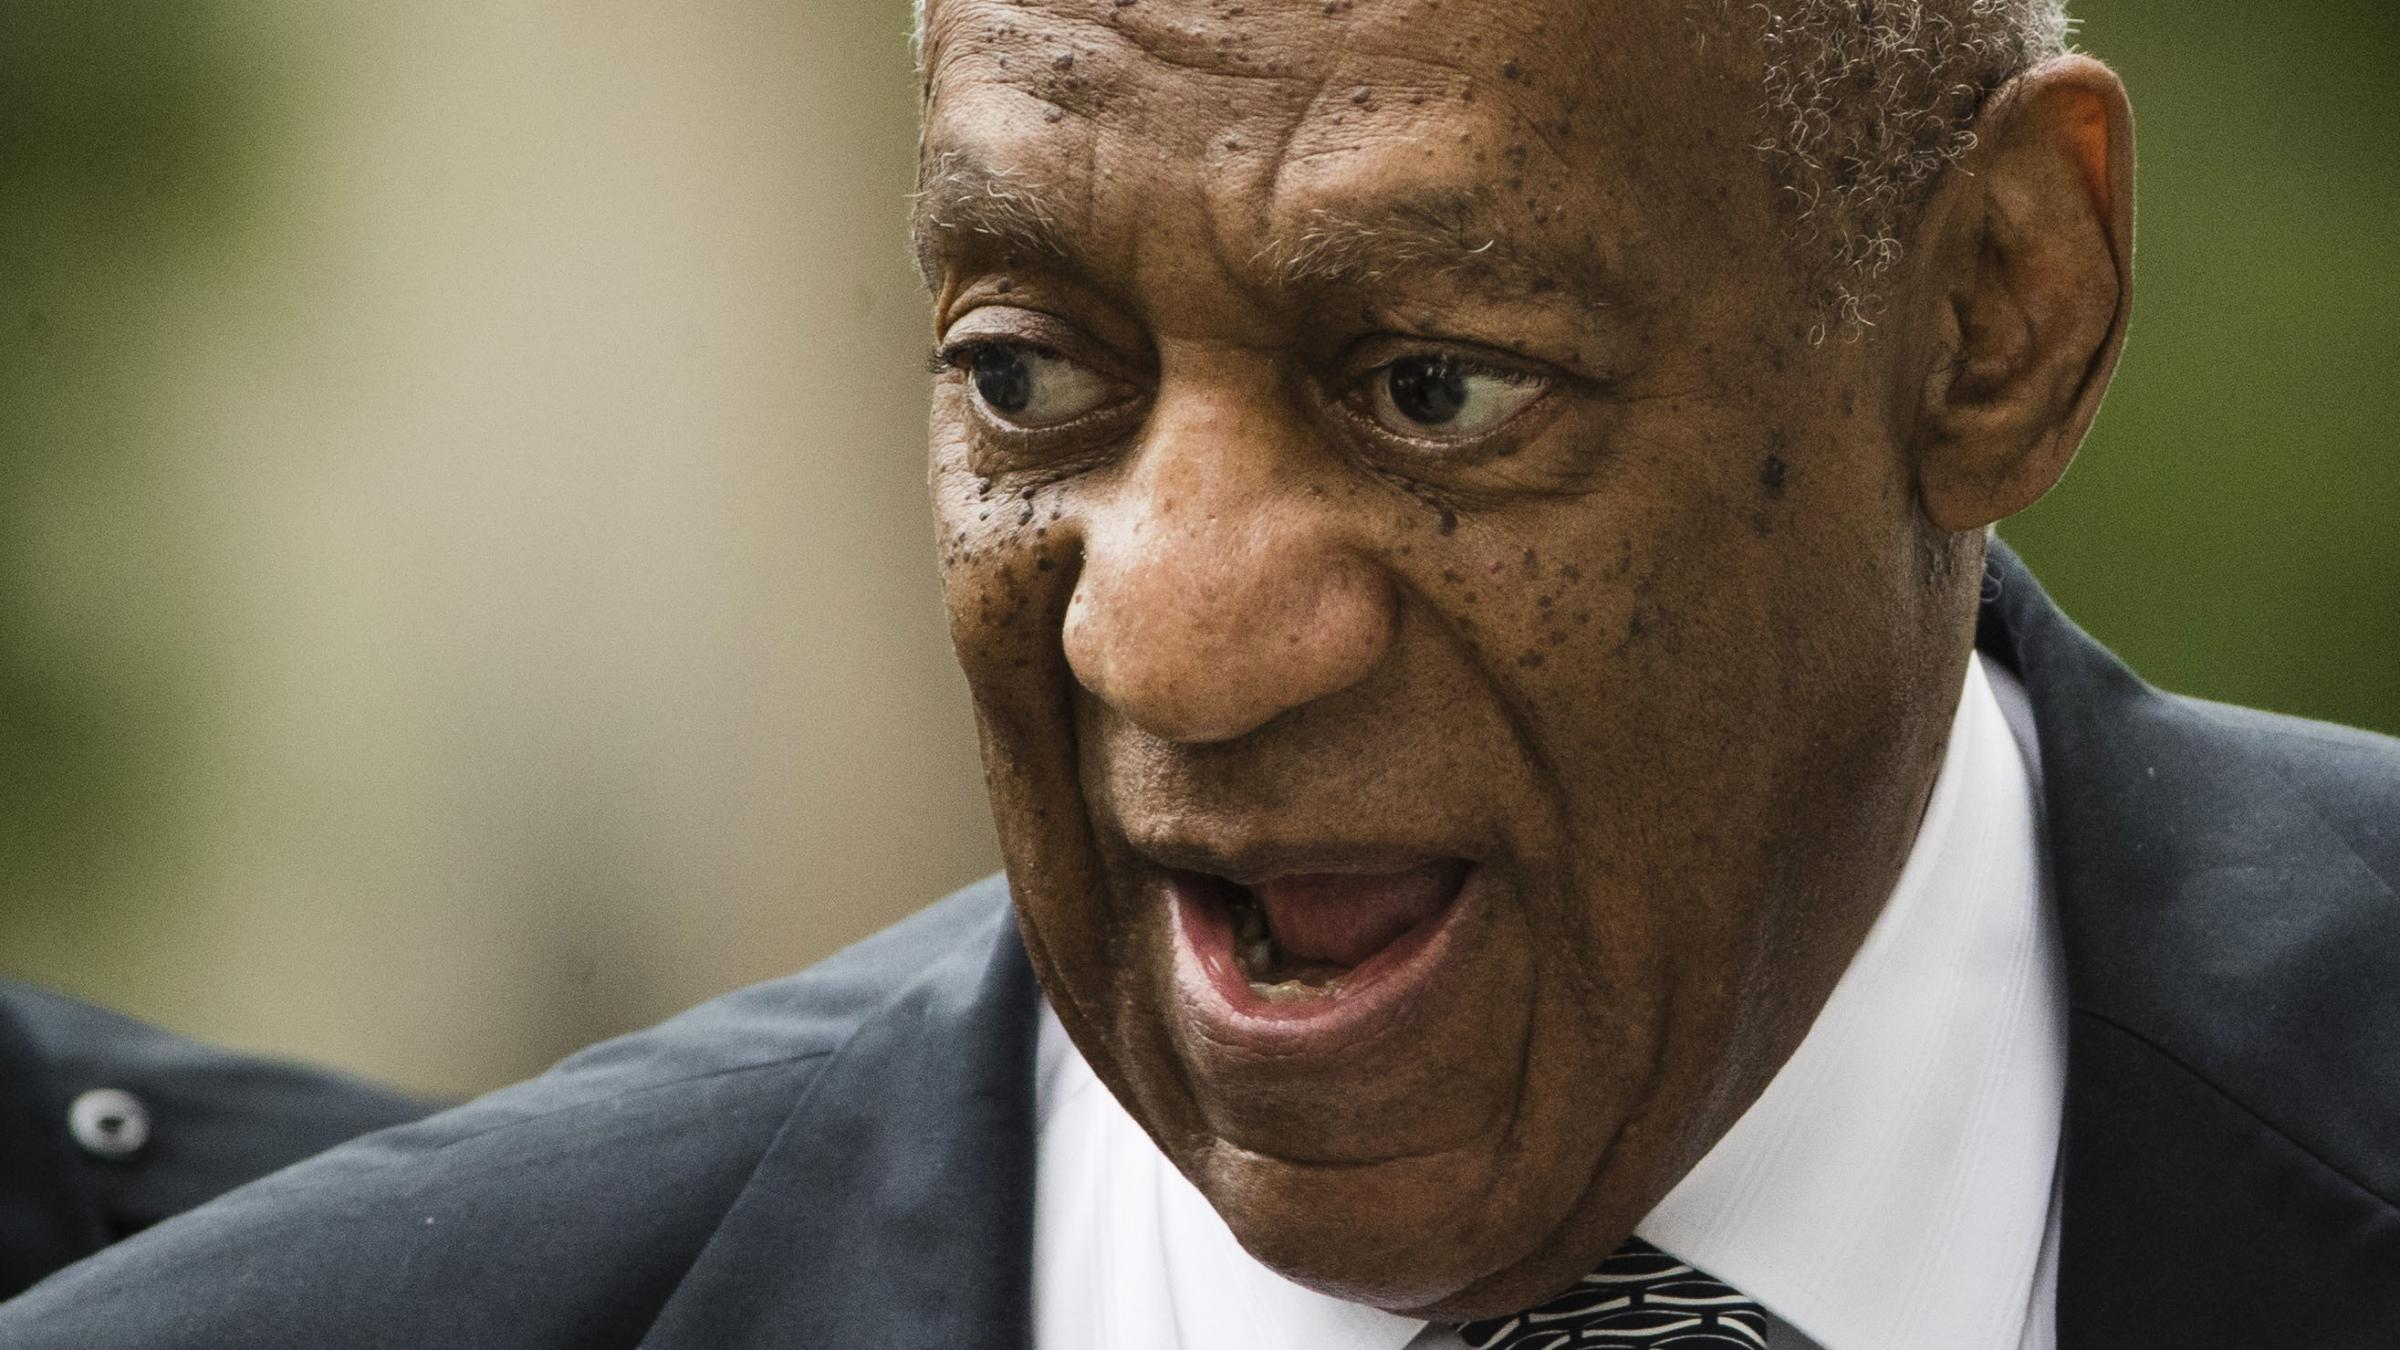 Bill Cosby supporters chant outside courthouse as deliberations drag on